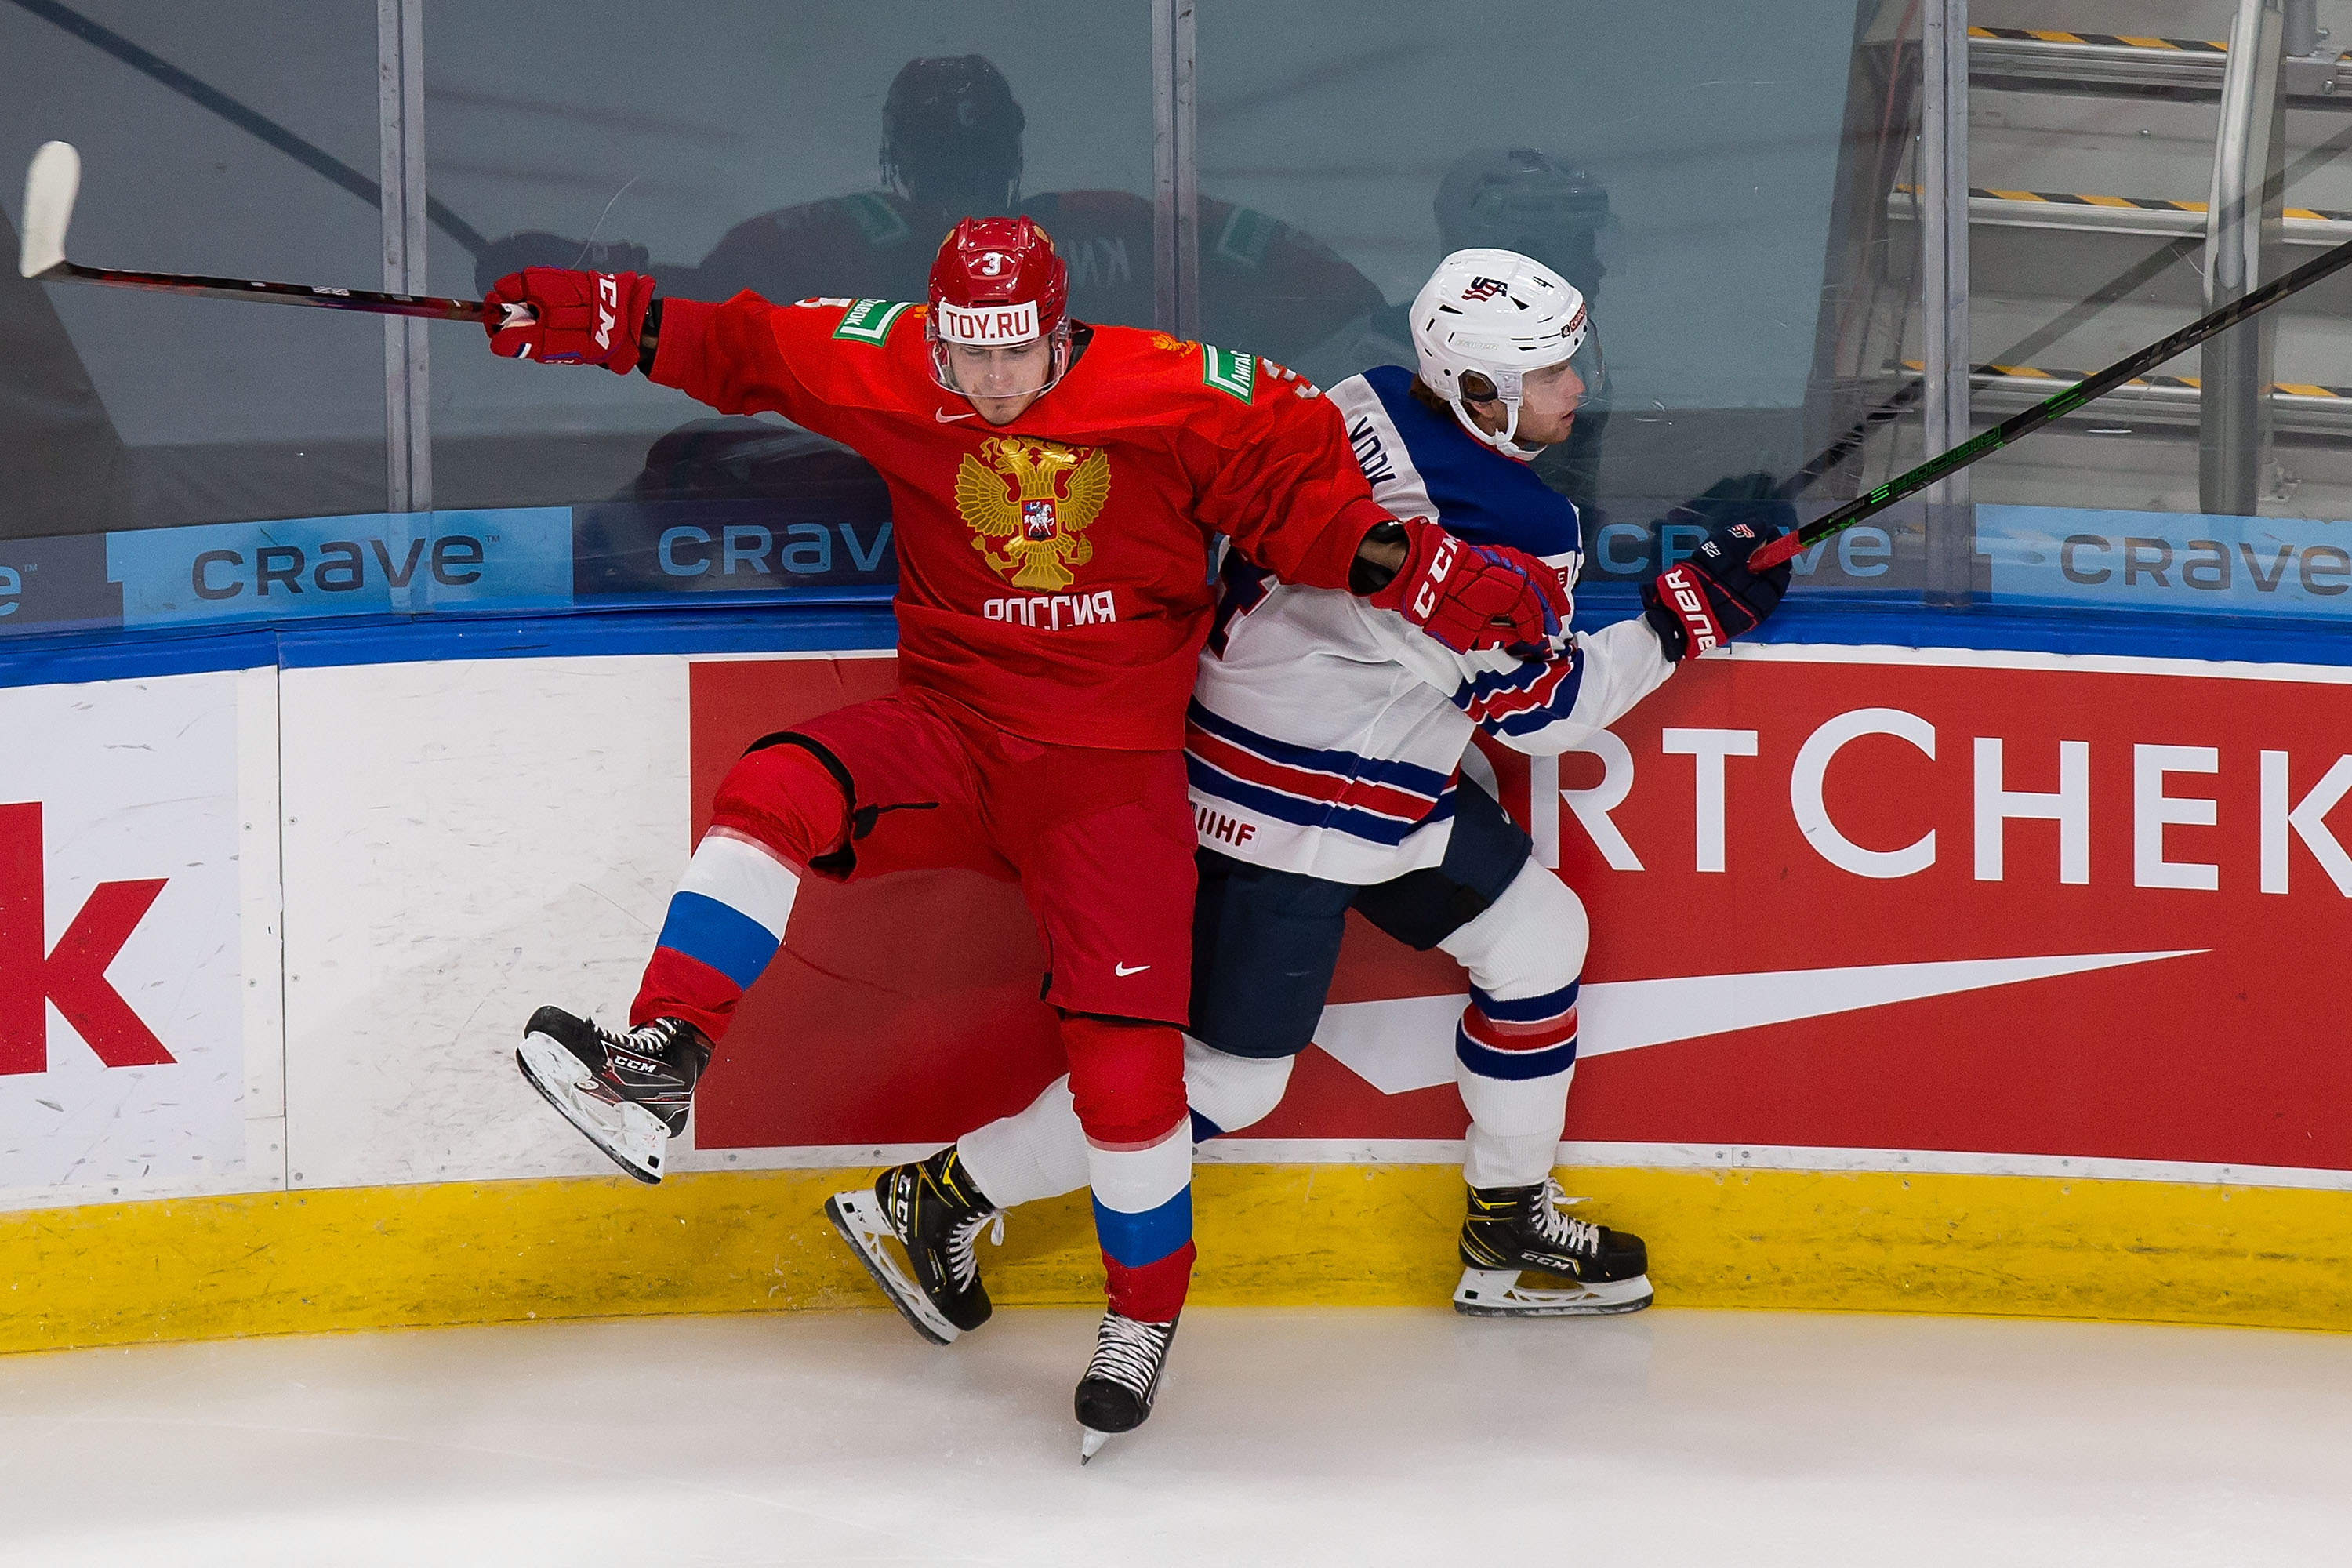 Artemi Knyazev #3 of Russia collides with Cam York #4 of the United States during the 2021 IIHF World Junior Championship at Rogers Place on December 25, 2020 in Edmonton, Canada.